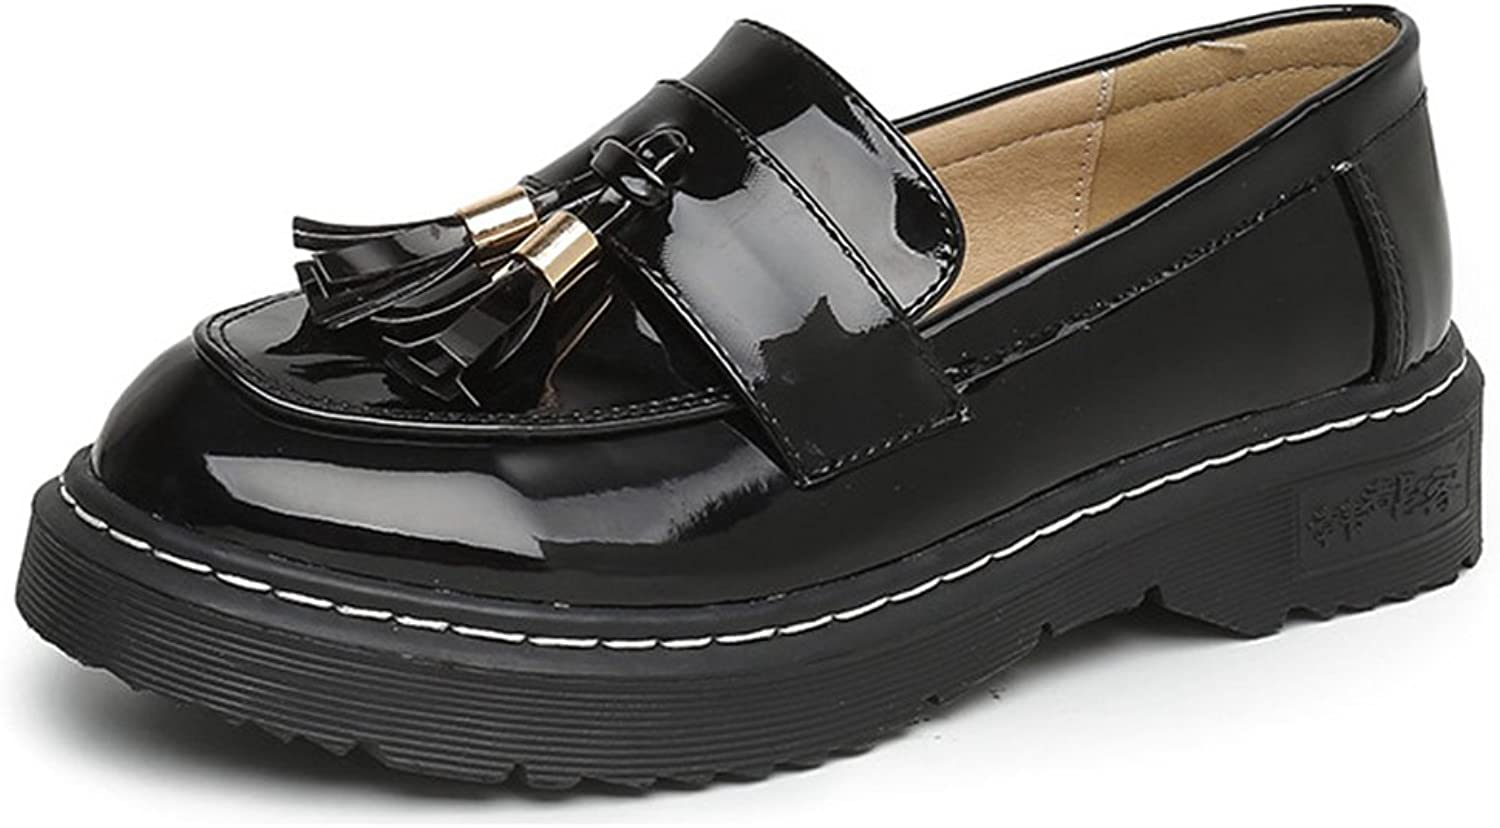 Btrada Women Tassel Oxford shoes Round Toe Wingtip Casual Loafer Oxford shoes